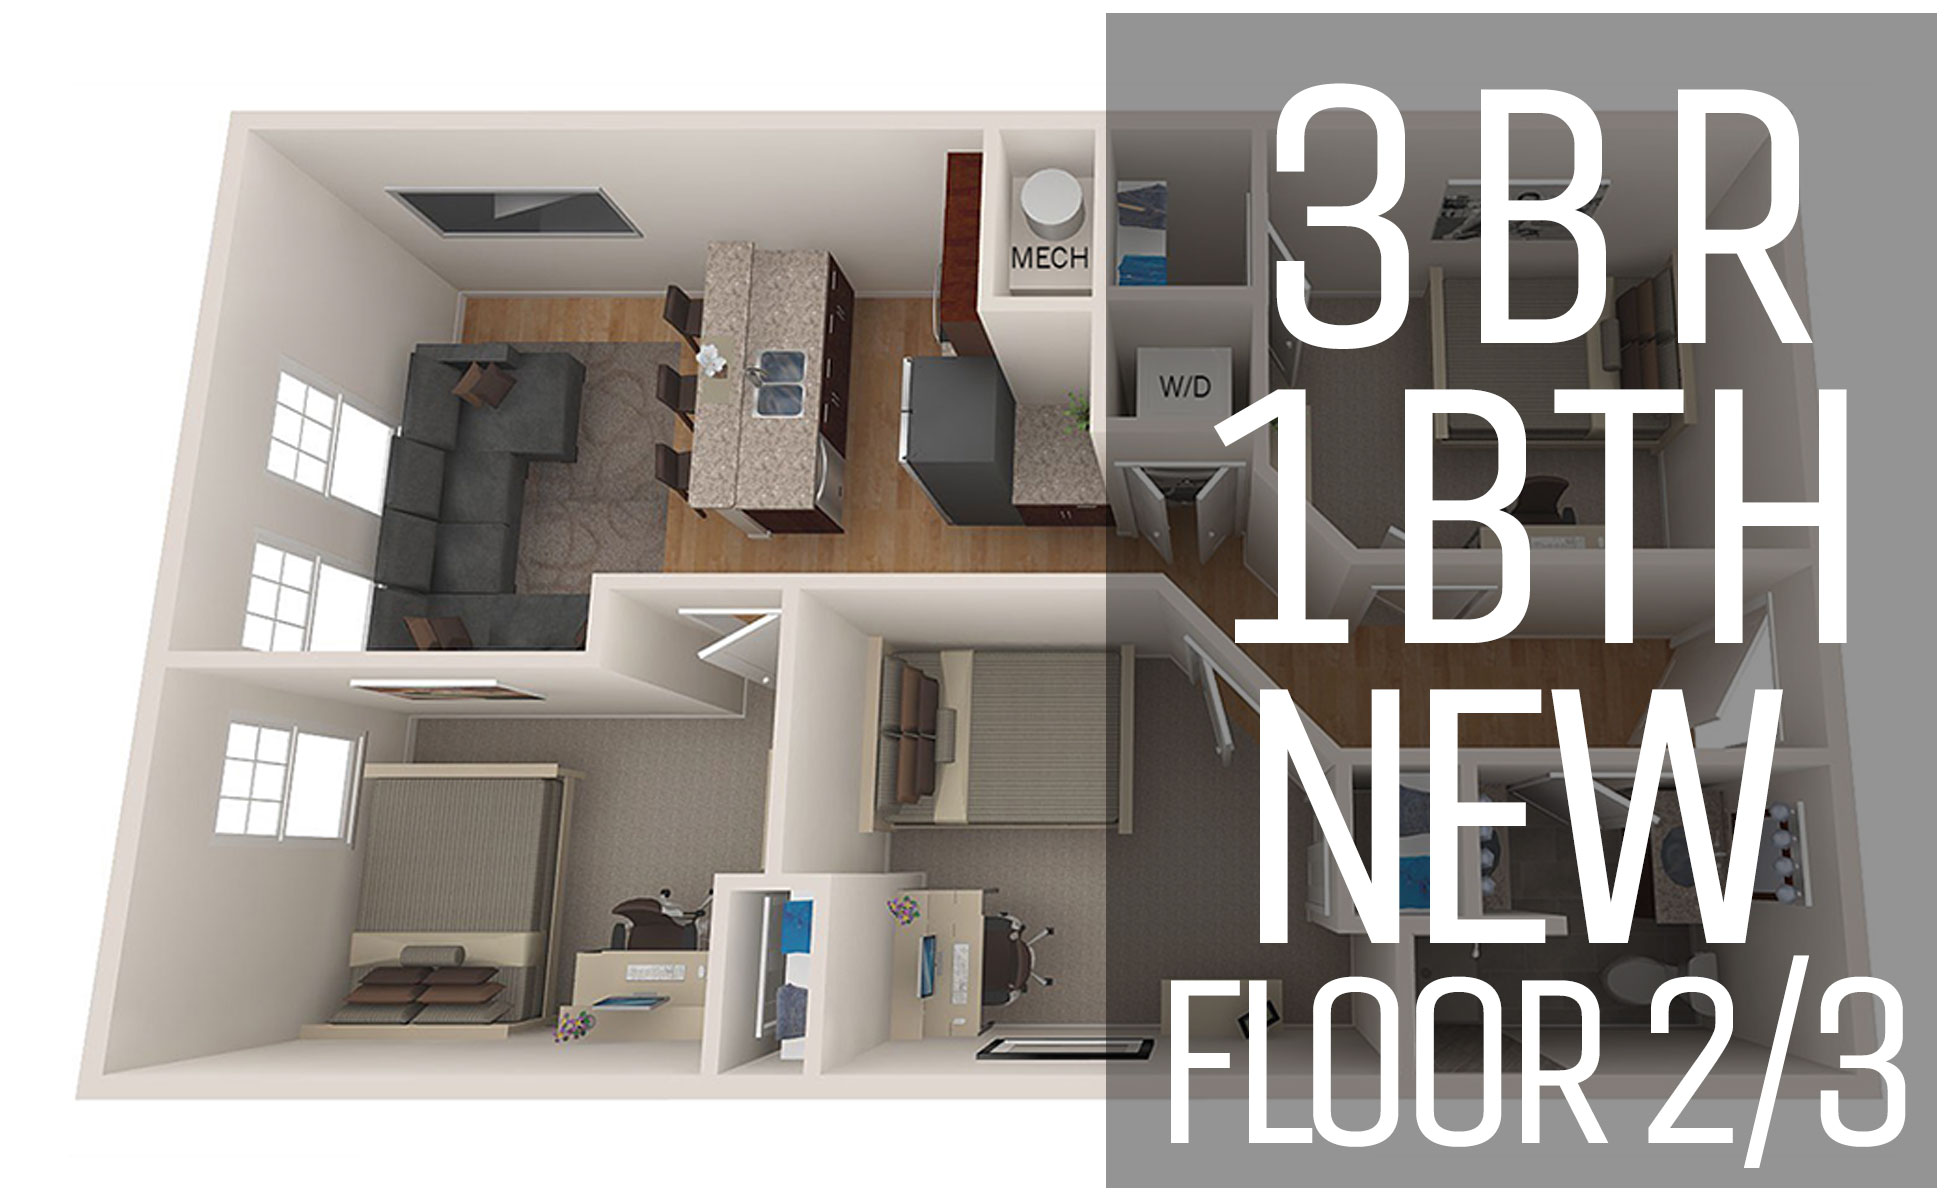 New Model U2013 Floor 2/3 3 Bedroom 1 Bath